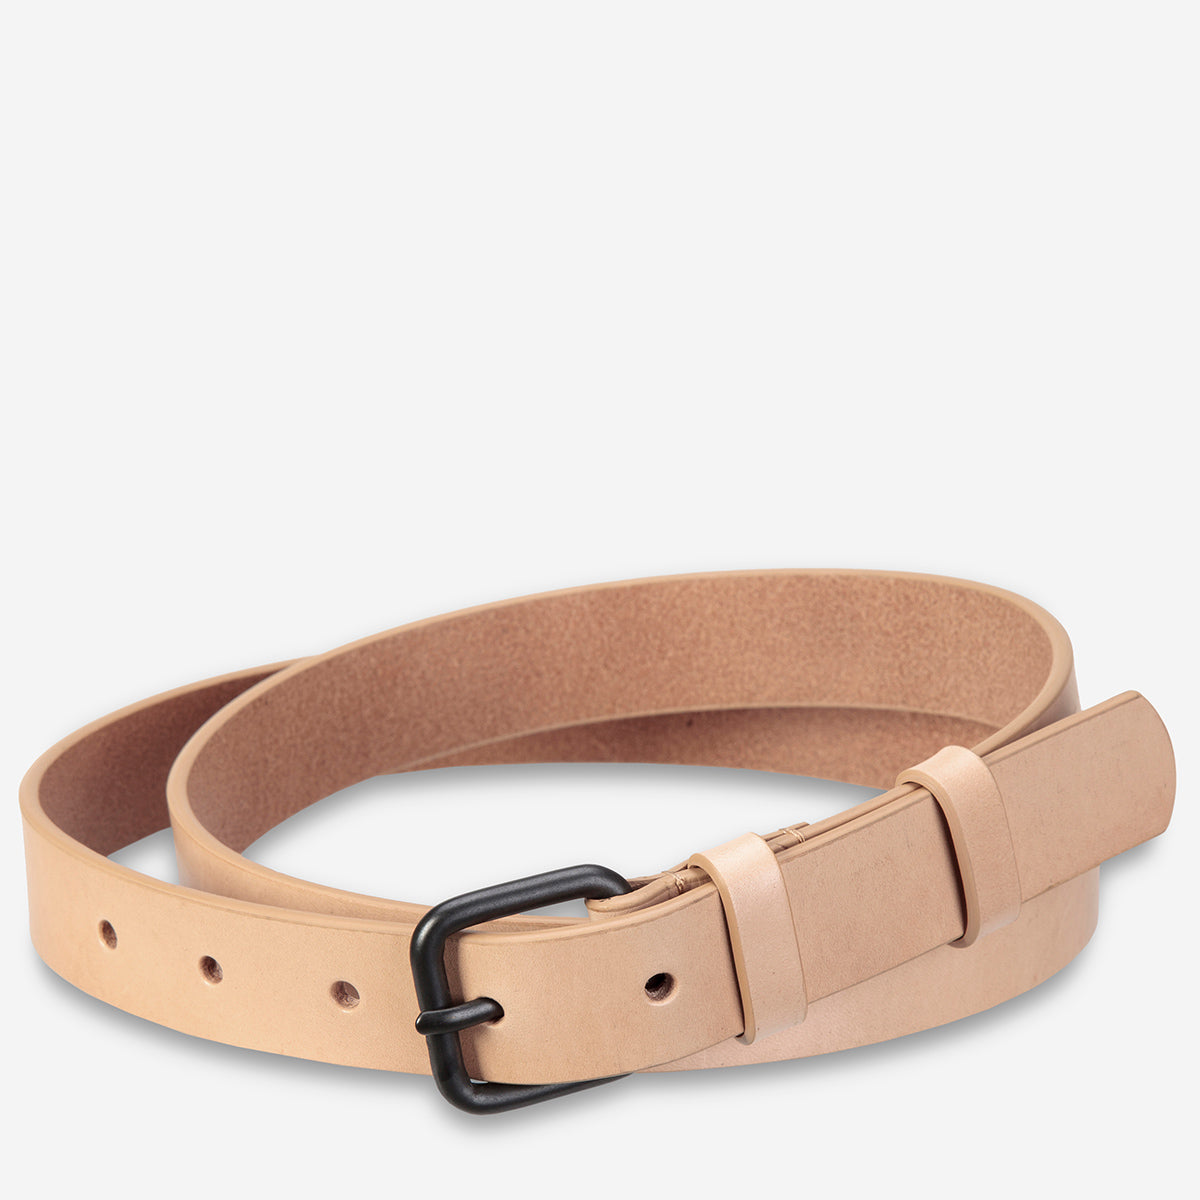 Status Anxiety Revelry Women's Leather Belt - Tan